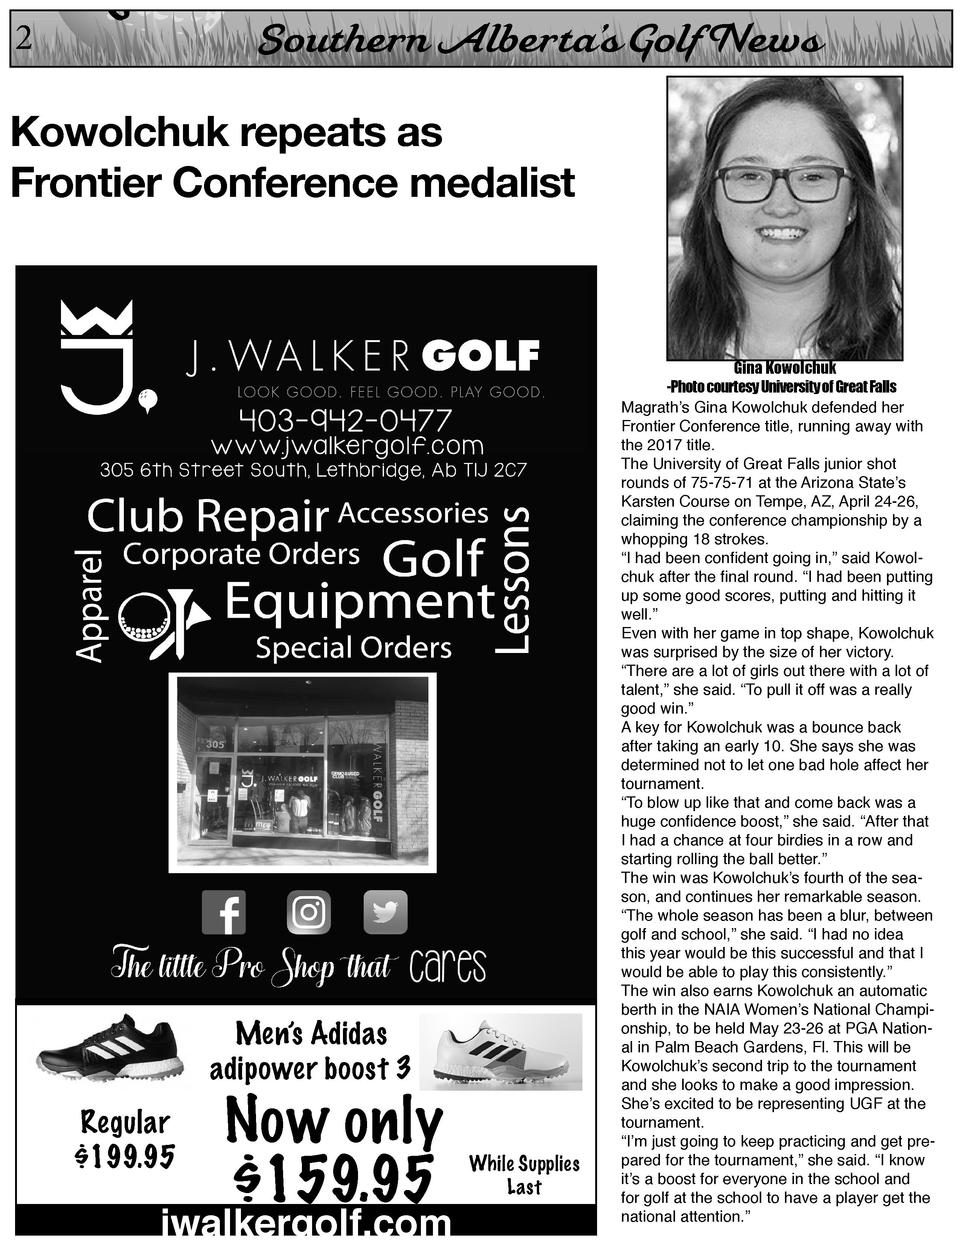 2  On  Southern Alberta   s Golf News  Kowolchuk repeats as Frontier Conference medalist  Men   s Adidas adipower boost 3 ...